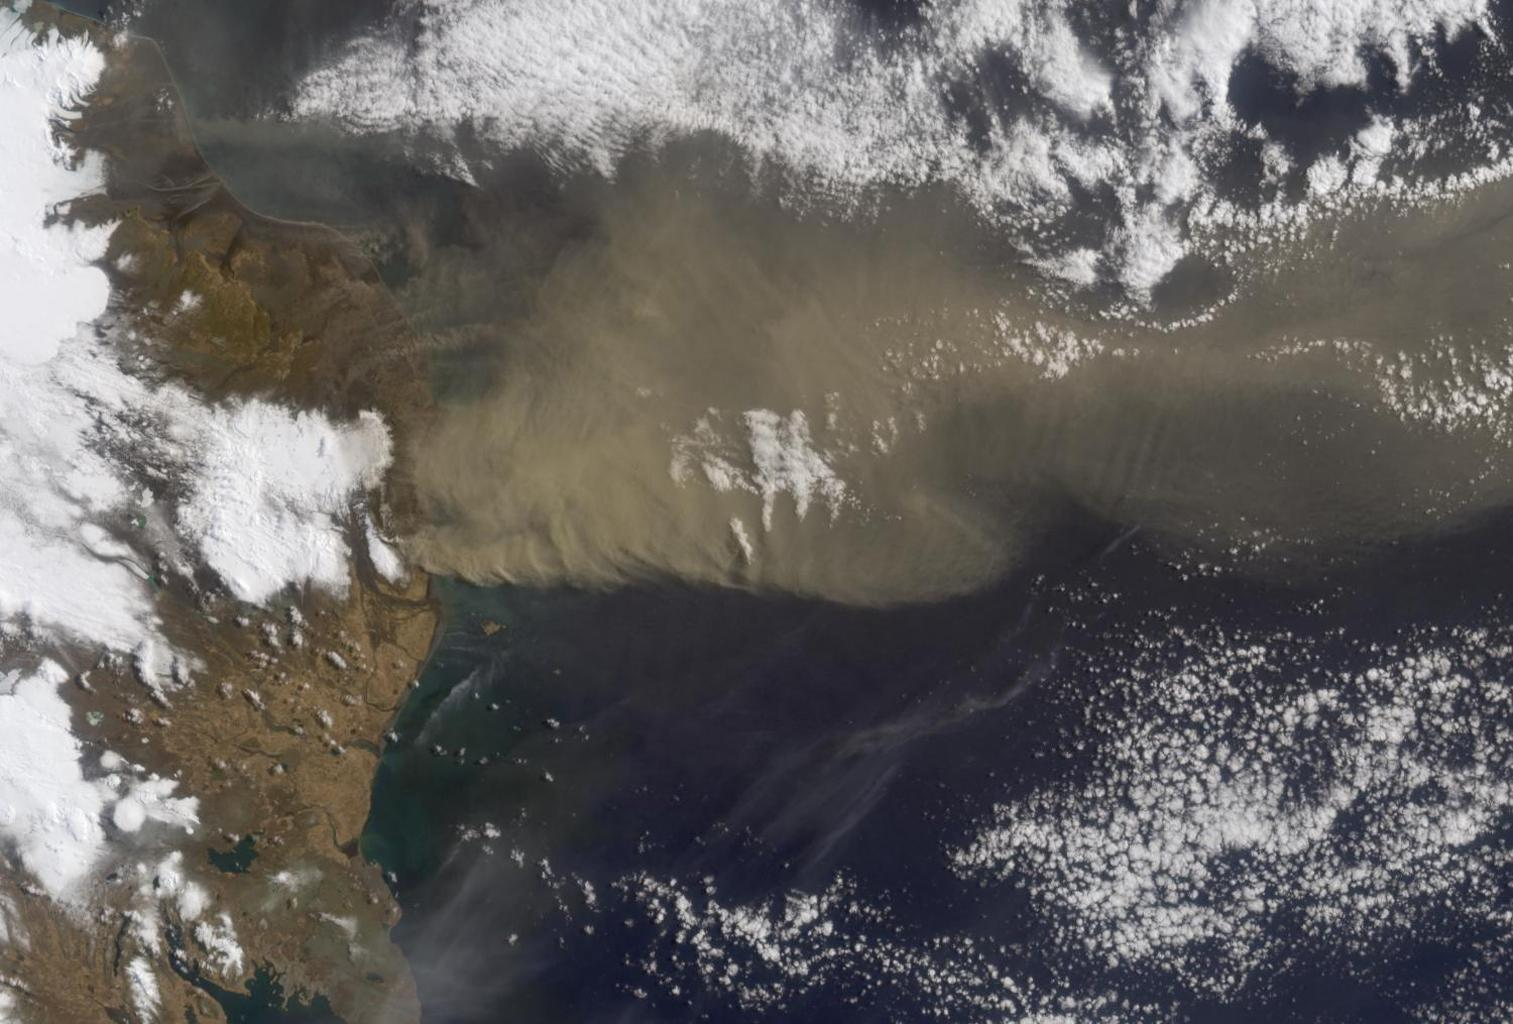 NASA's Terra satellite flew directly over Iceland on April 19, 2010 and captured this image of the Eyjafjallajökull volcano and its erupting ash plume.